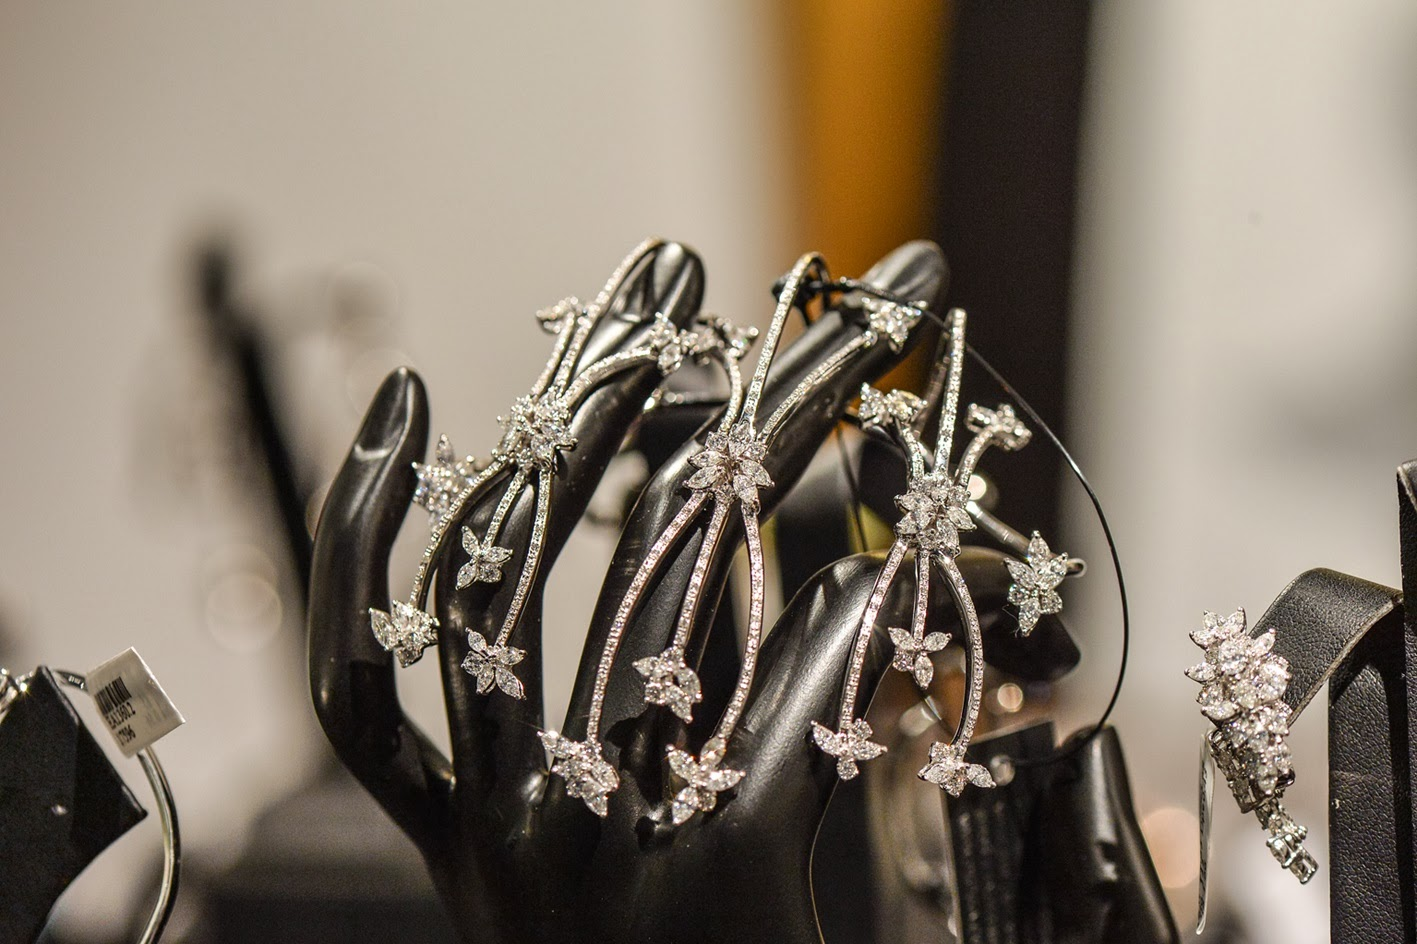 Exquisite designer pieces seen up-close on a black display hand, beautiful ideas for jewelry display.